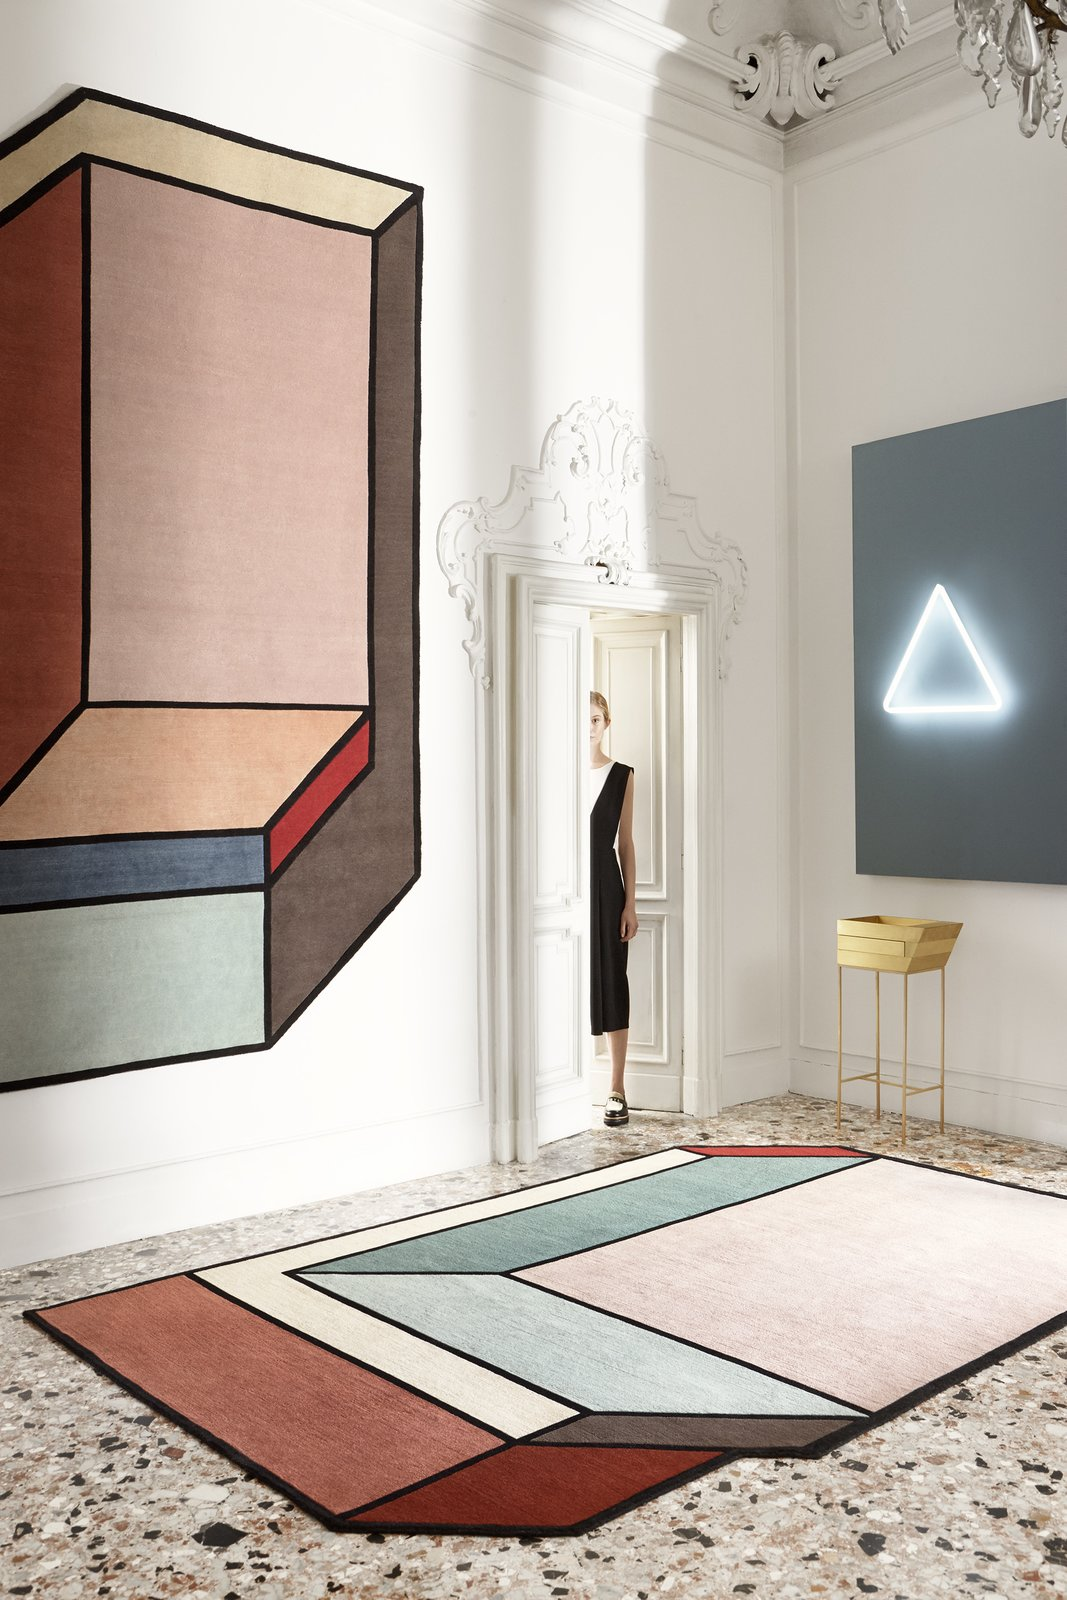 Visioni Series: Designed by Patricia Urquiola for CC Tapis  How to Frame Space With a Graphic Rug by Aileen Kwun